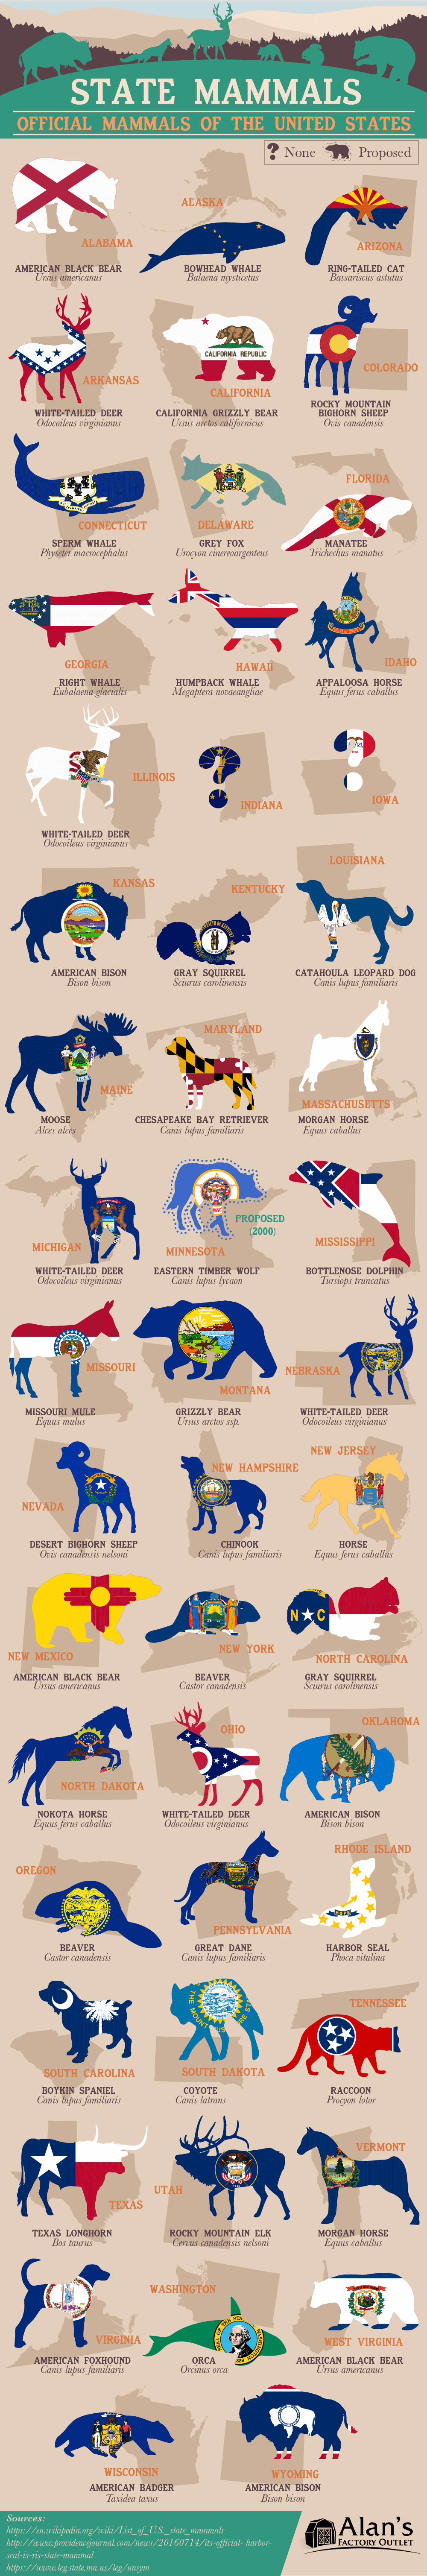 State-Mammals.png